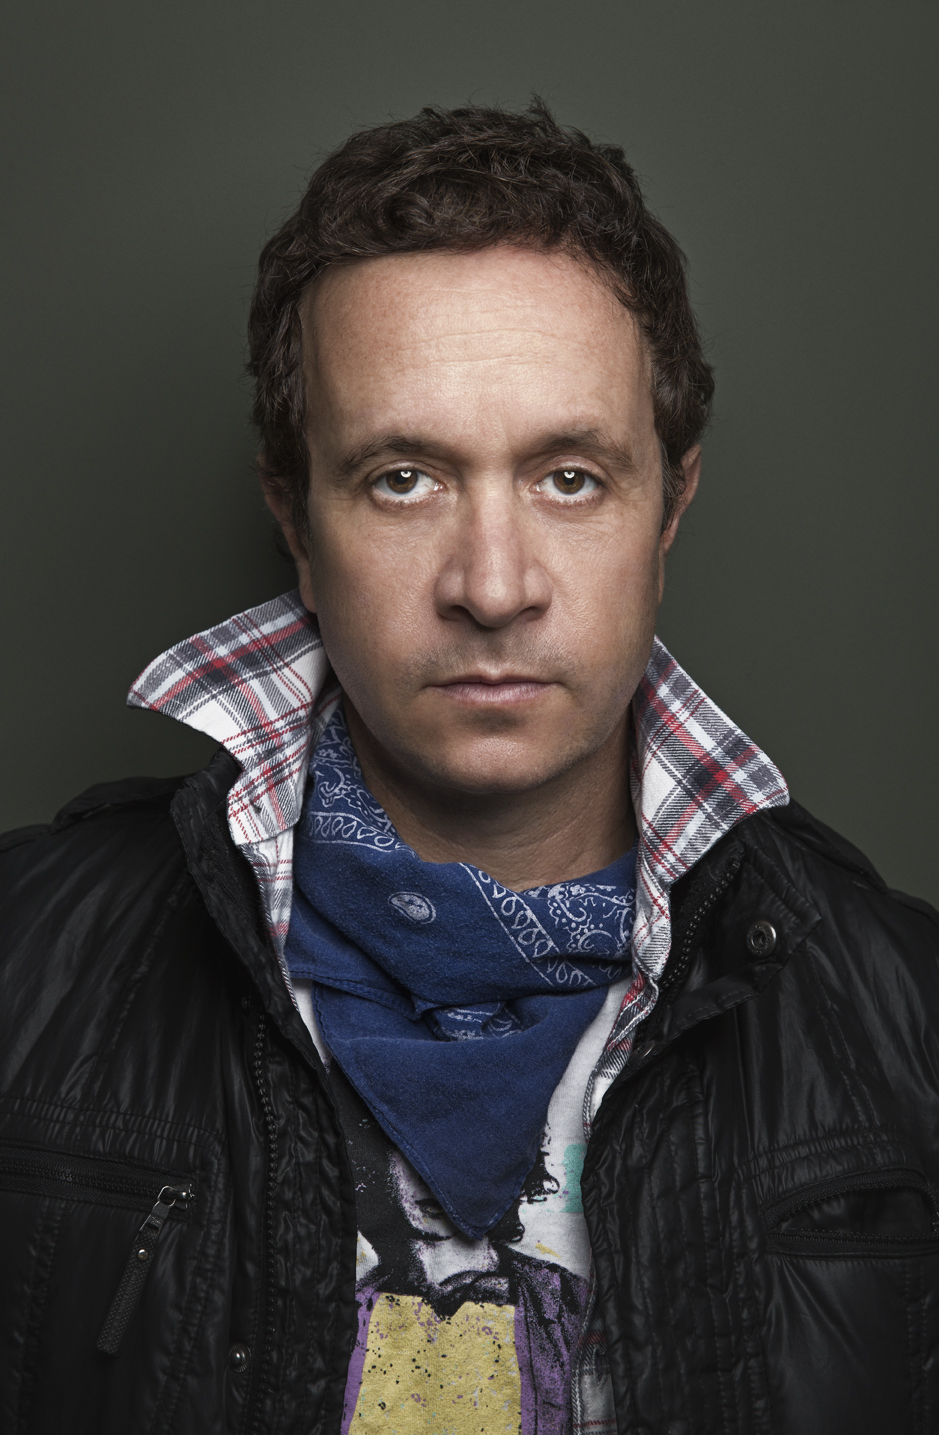 Pauly Shore Weasel Quotes Www Topsimages Com